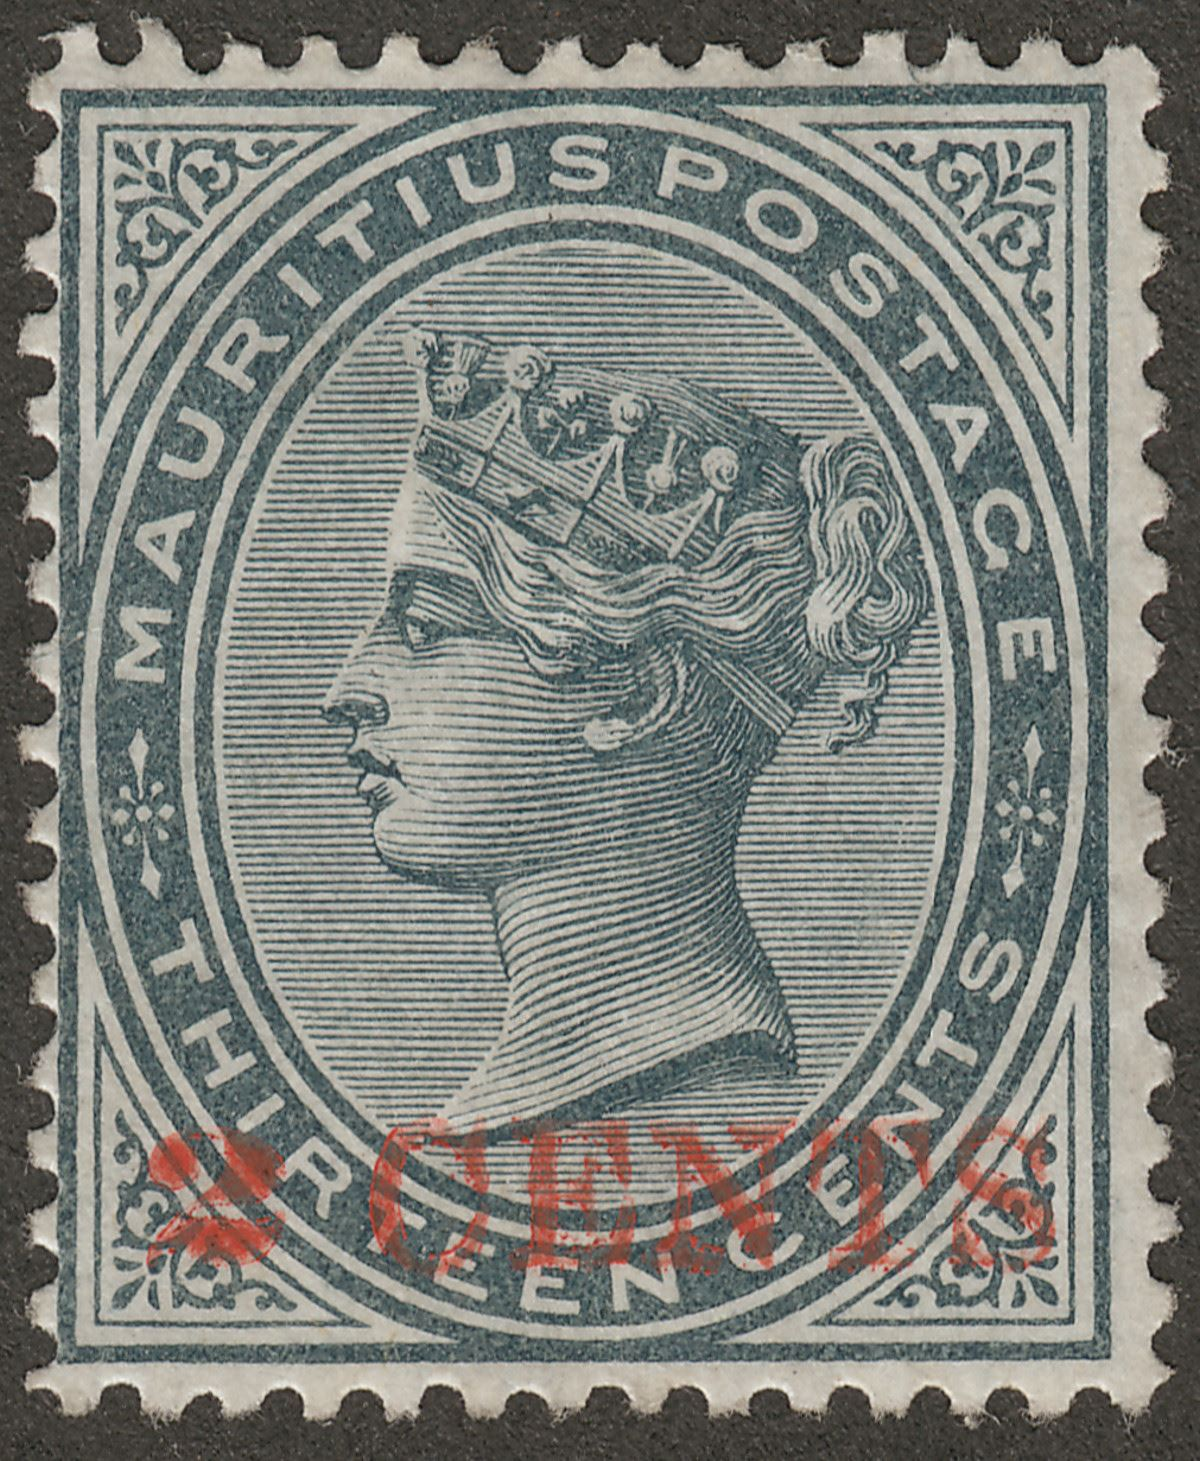 Mauritius 1887 QV 2c on 13c Slate Surcharge Unused SG117 cat £75 as mint